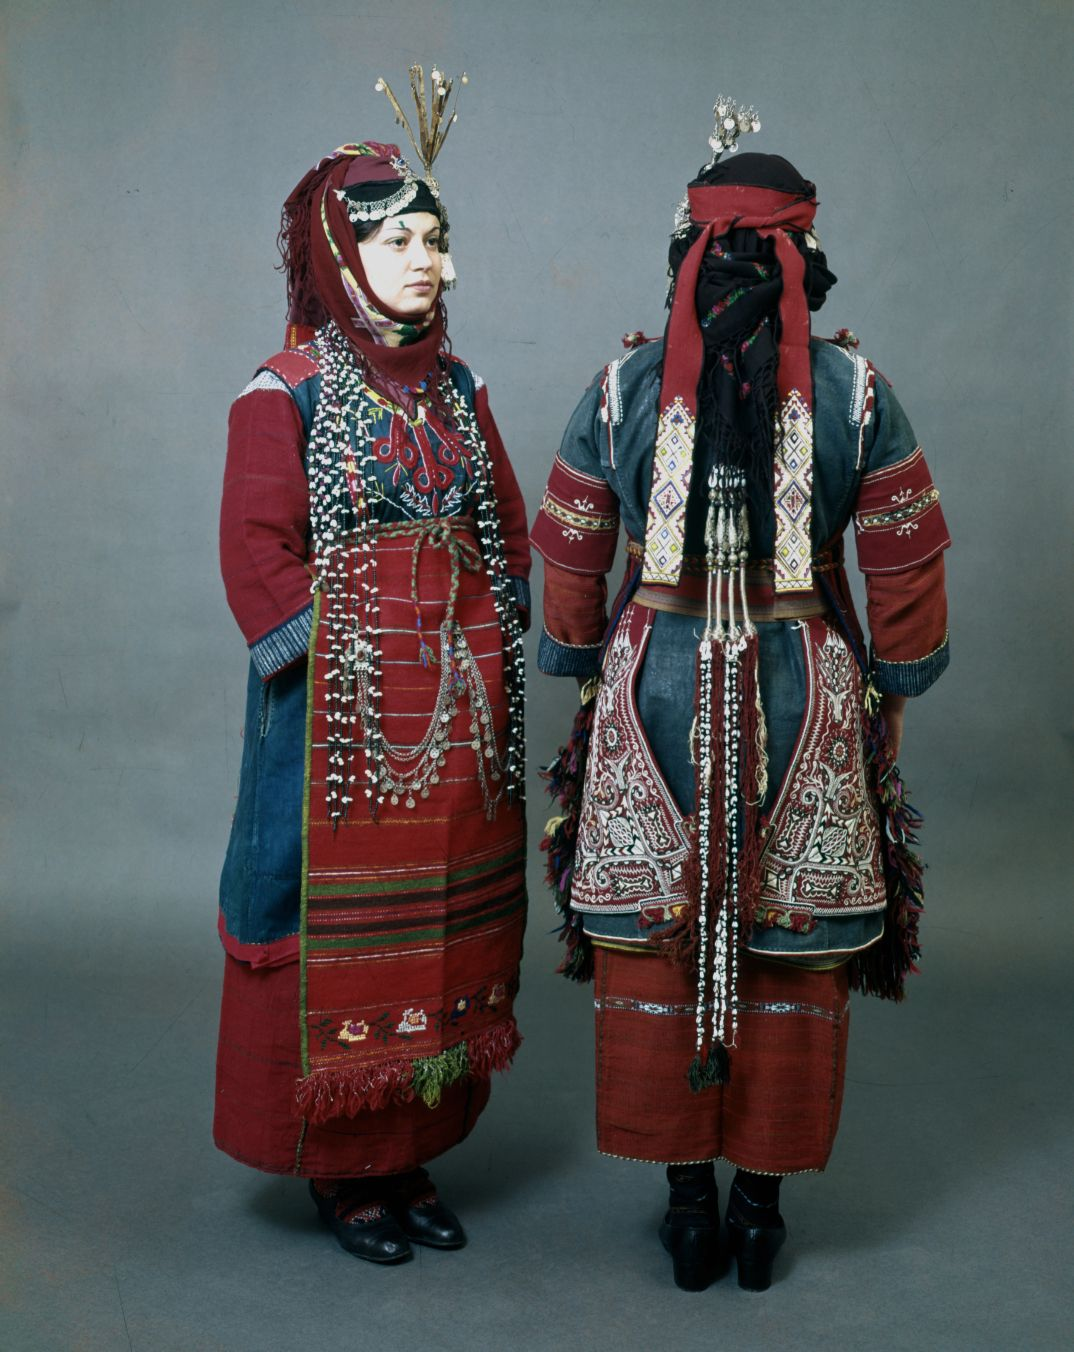 """Coiffure de gauche : fait penser a ce qu'on pouvait trouver en 19e   Front and back Thessaloniki district, Liti and Drymos festive costumes with the characteristic hair ornaments """"bapkes"""" and the head ornament """"sourgoutsa"""", a metal tassel in the form of a pin. - early 20th   vue arriere : http://www.texmedindigitalibrary.eu/img_db/ogoi0u38_2.jpg"""